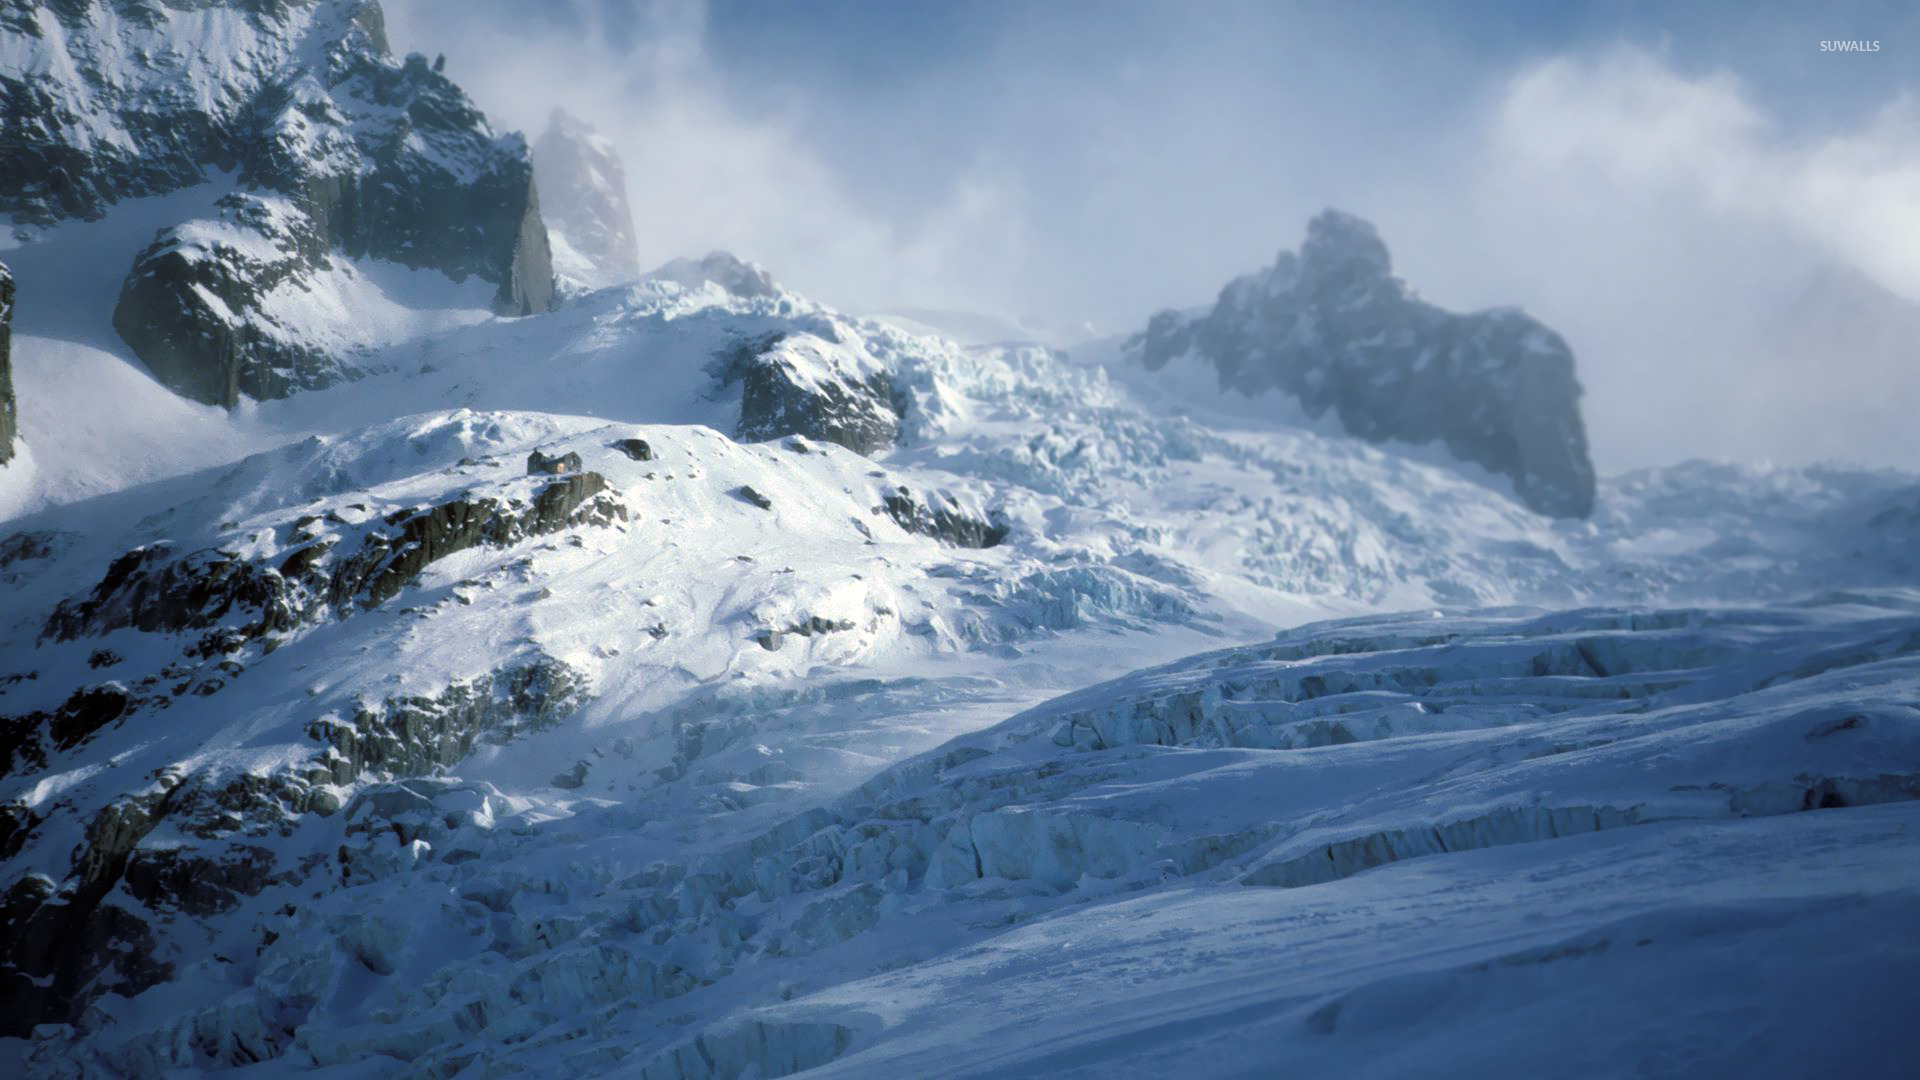 how to live in a snowy mountain